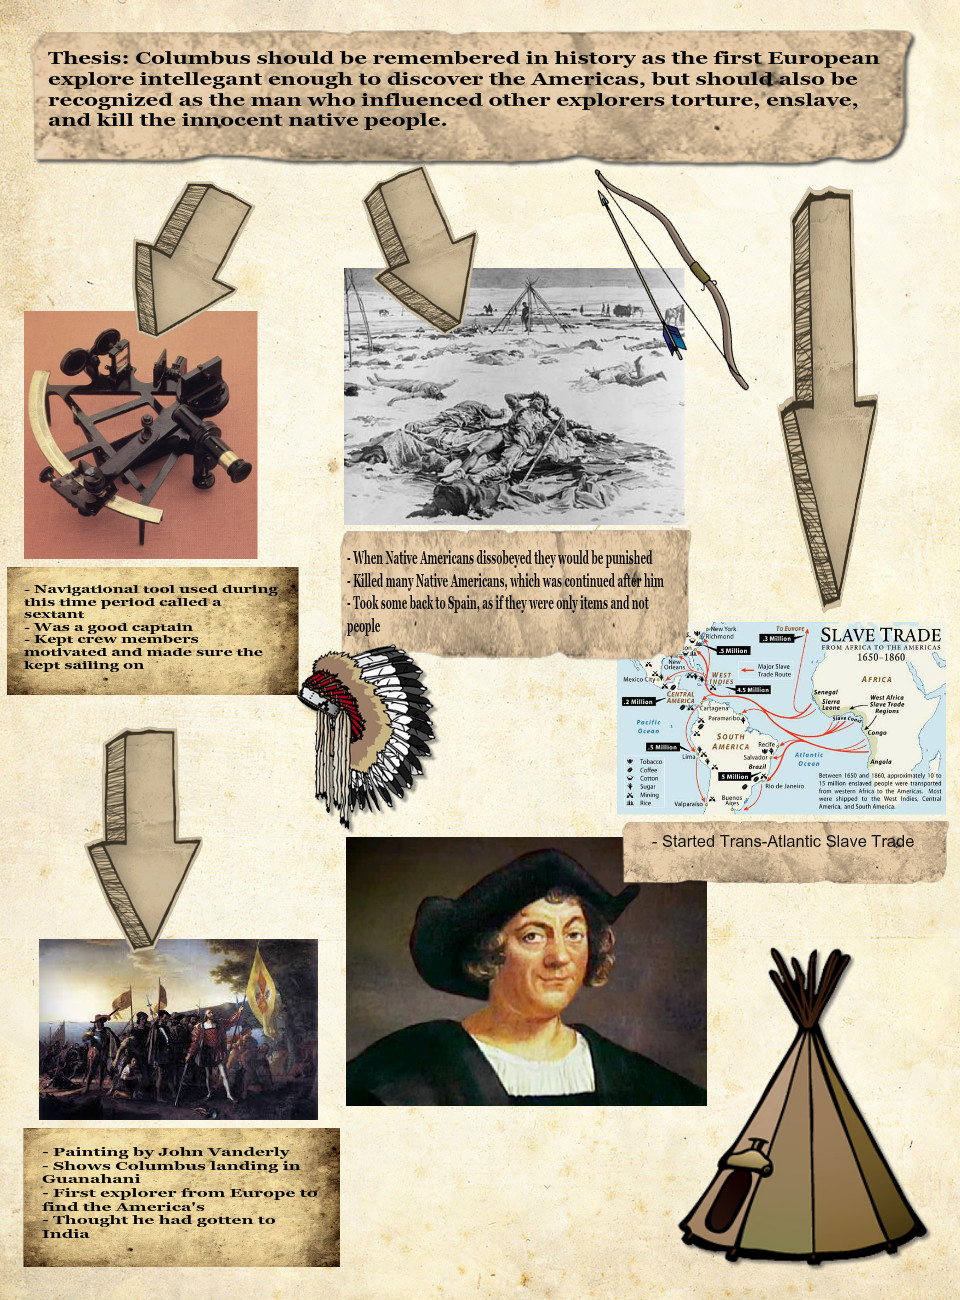 How Should Columbus be Remembered?